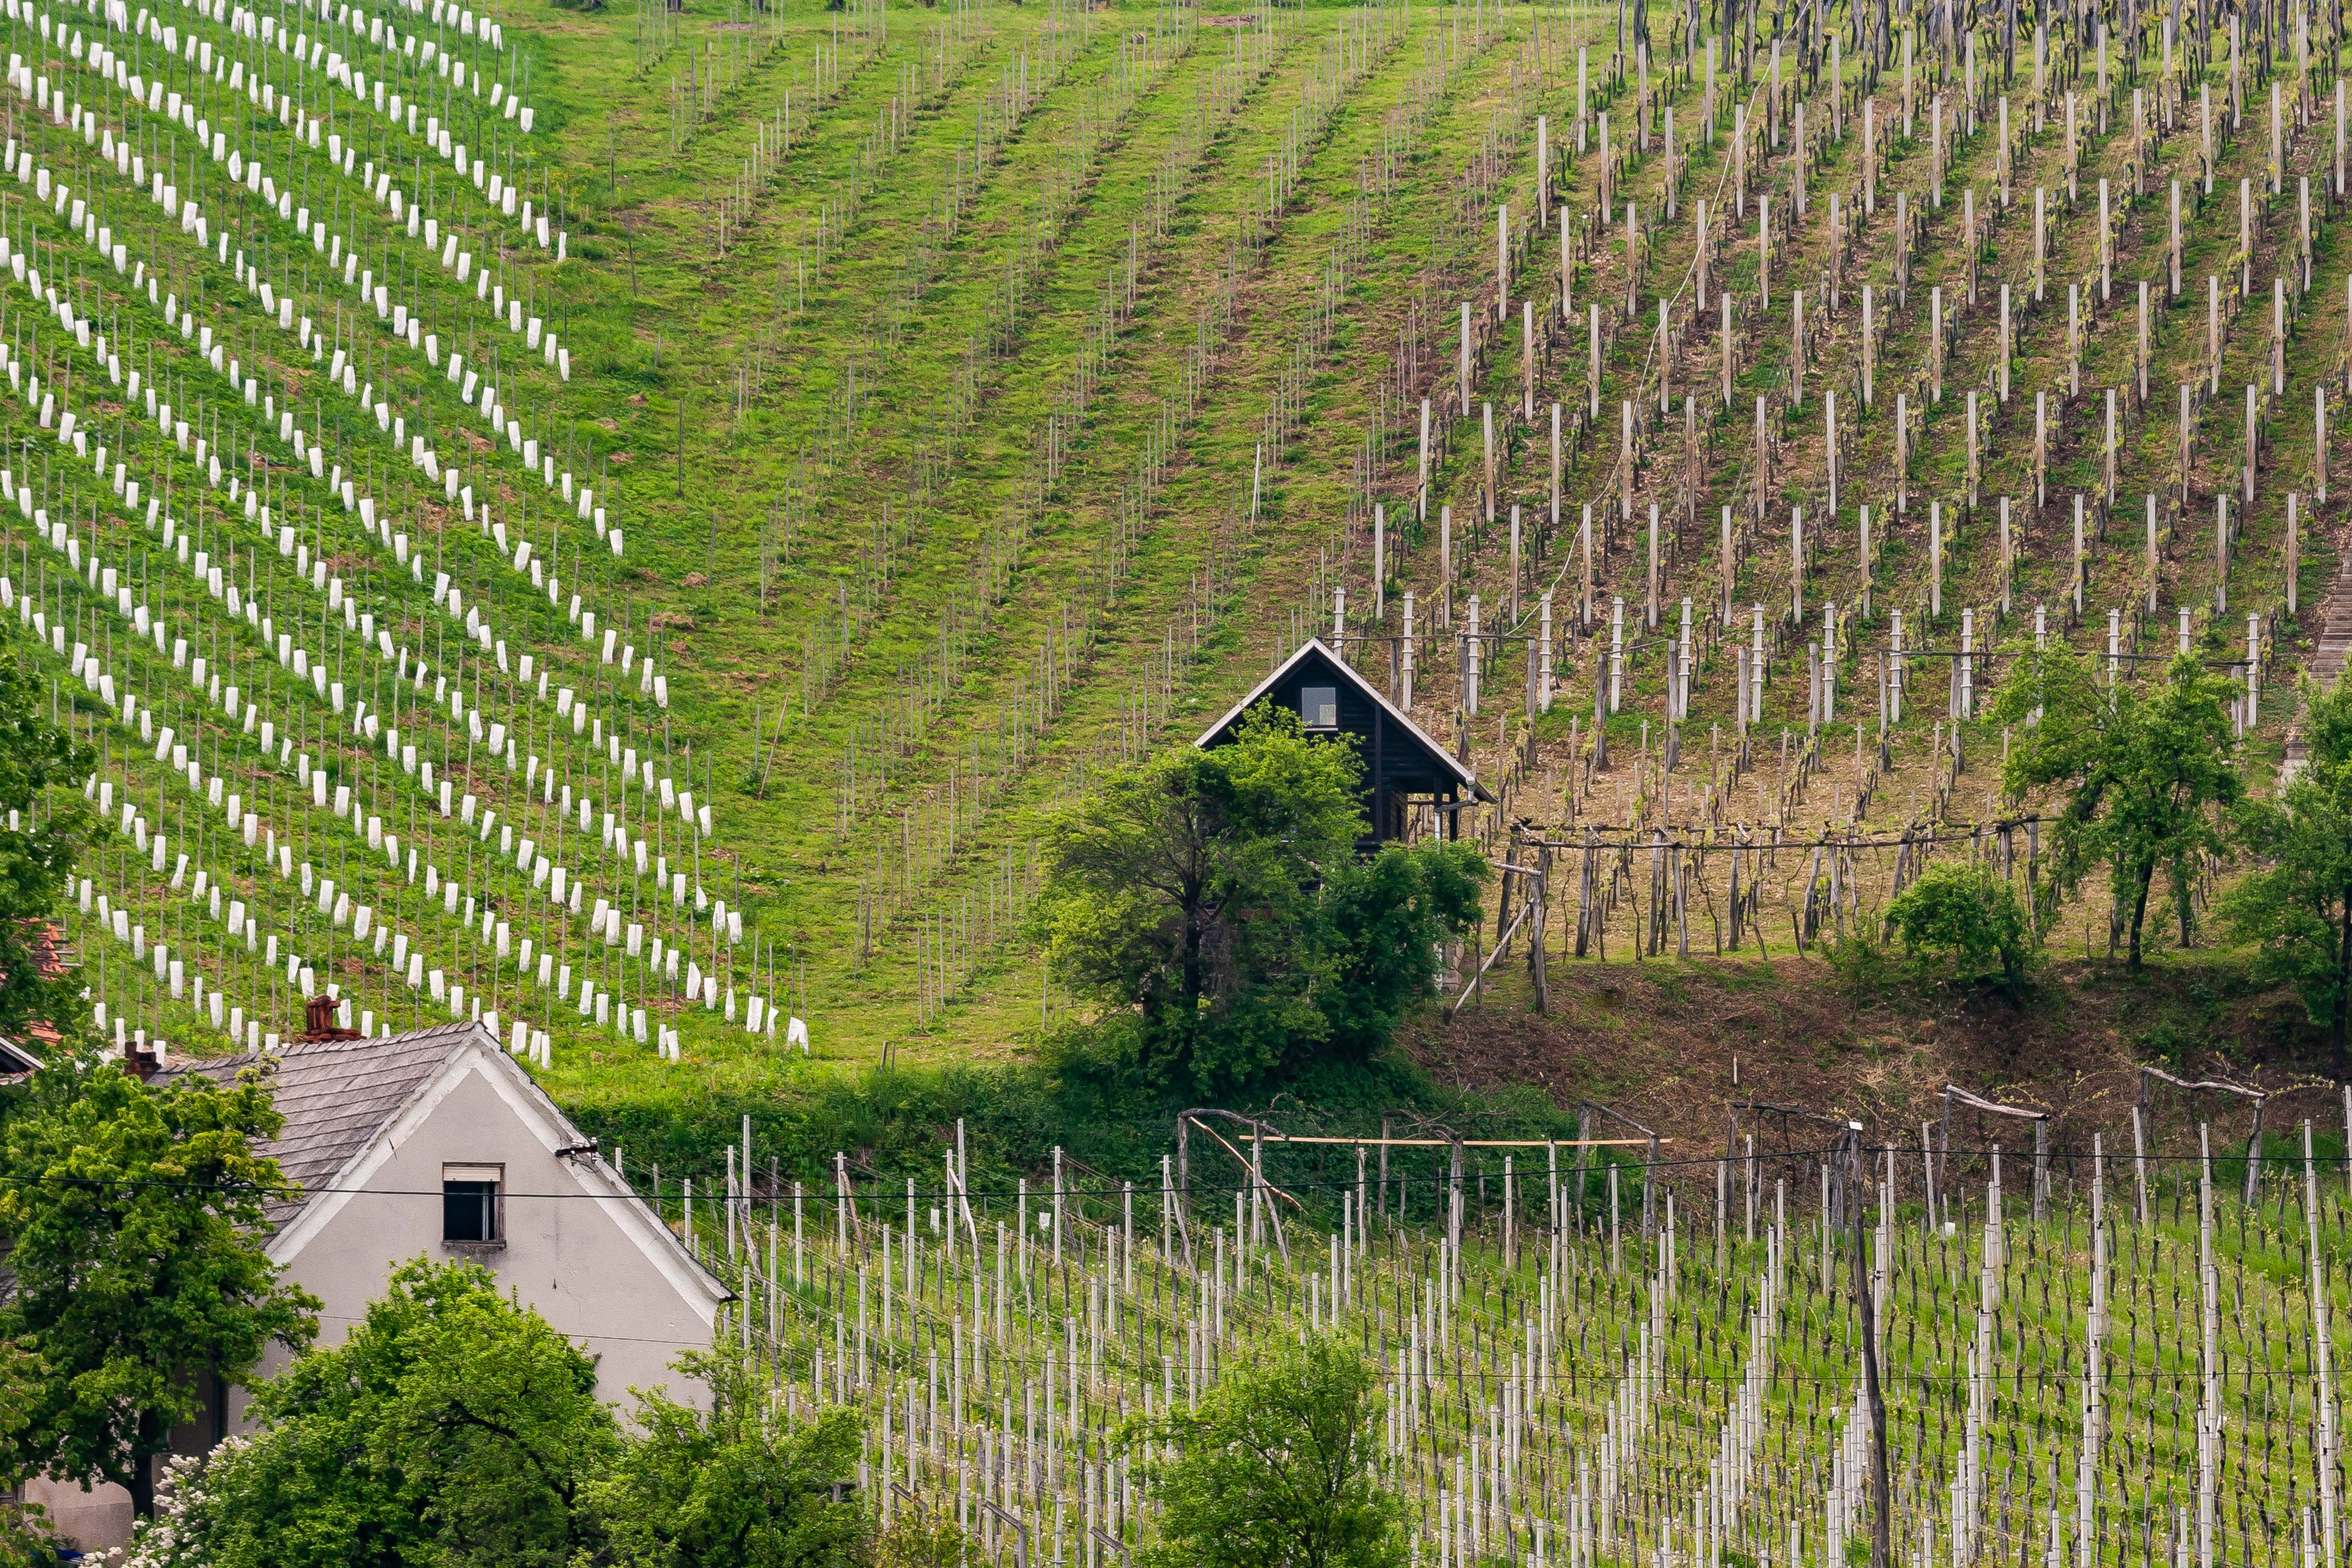 Slovenia, Oplotnica Prov, Vineyards, 2006, IMG 5653